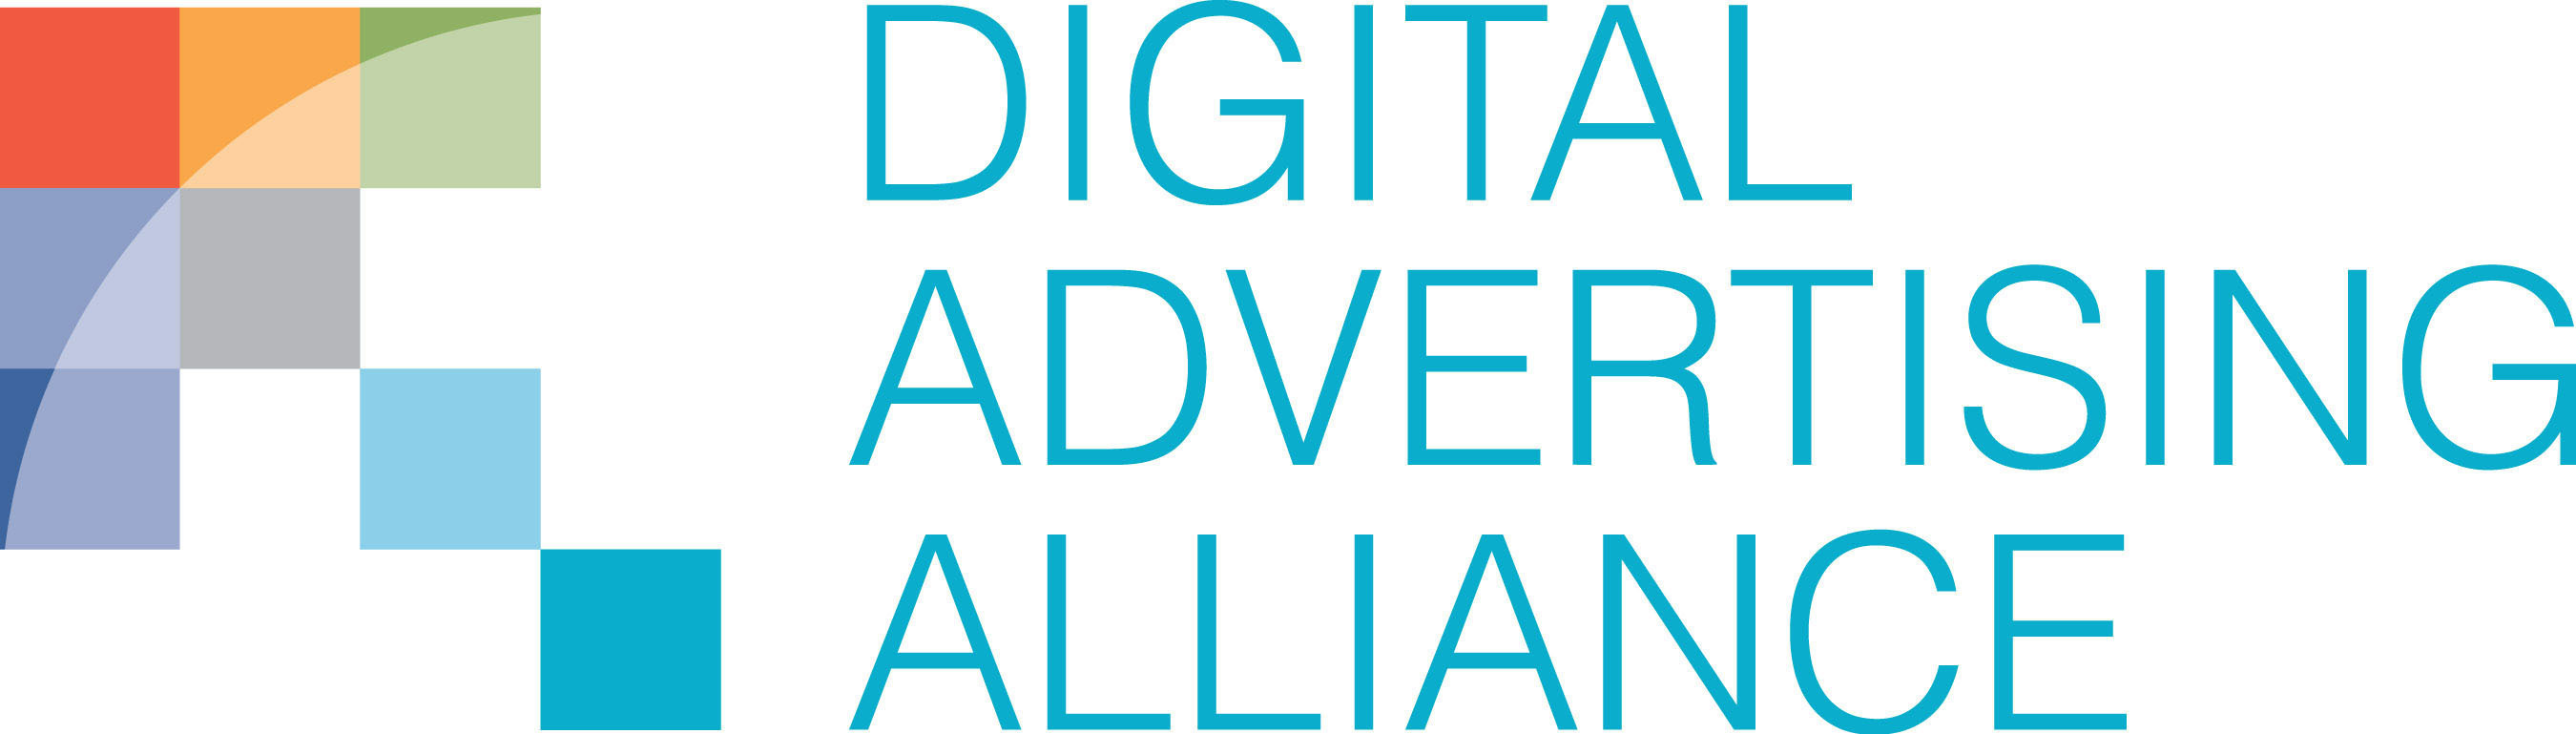 Digital Advertising Alliance (DAA)